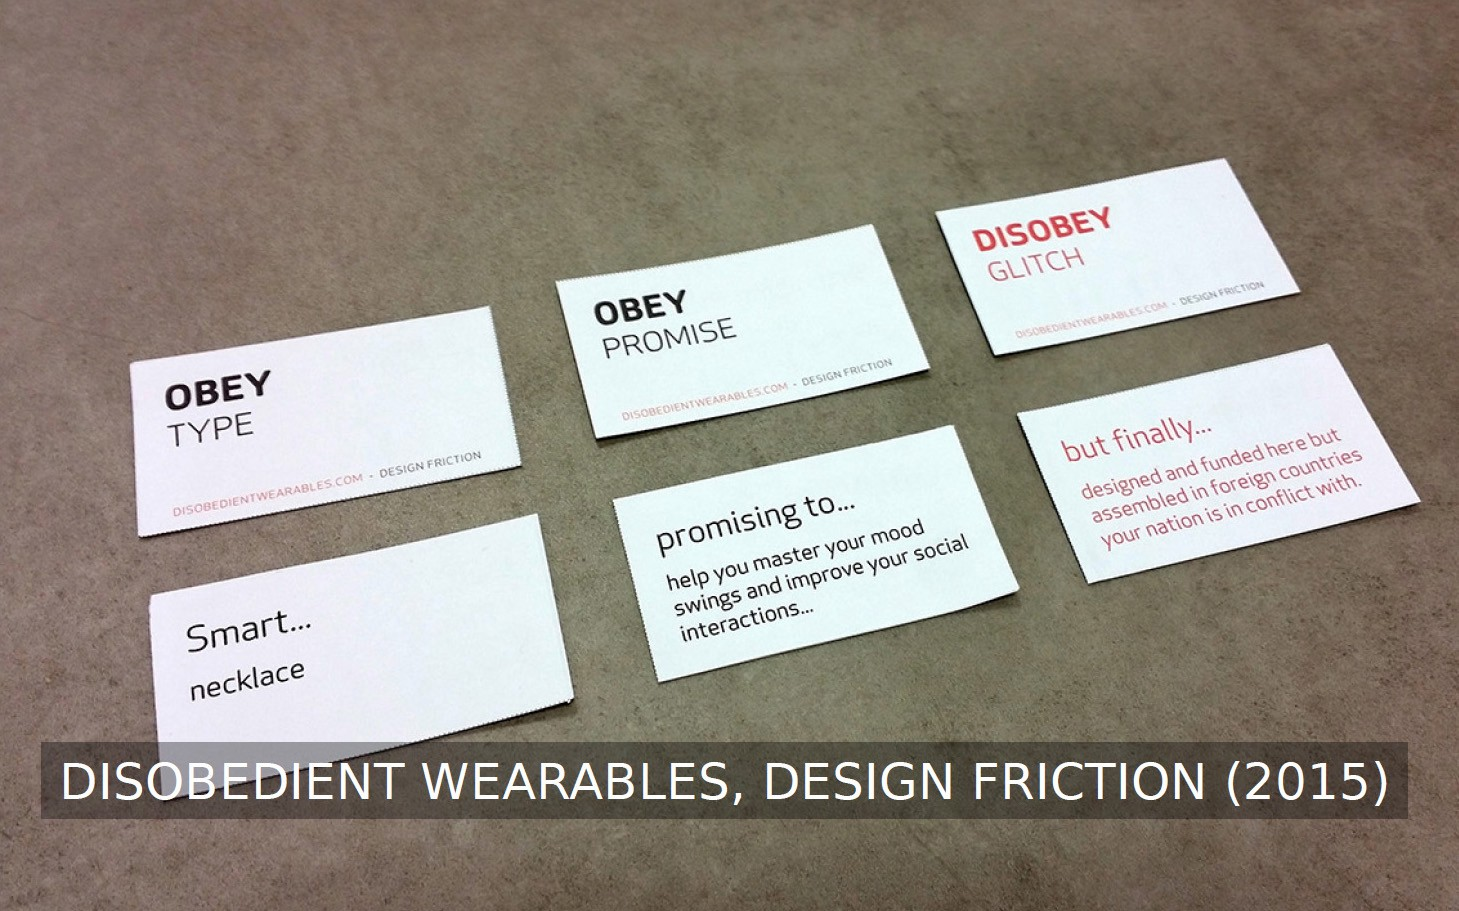 Reanticipation iterative design fictions design friction medium the desobedient wearables cards are assumed as a tool to design new alternative wearables following the idea of disobedience the content of the cards has solutioingenieria Gallery